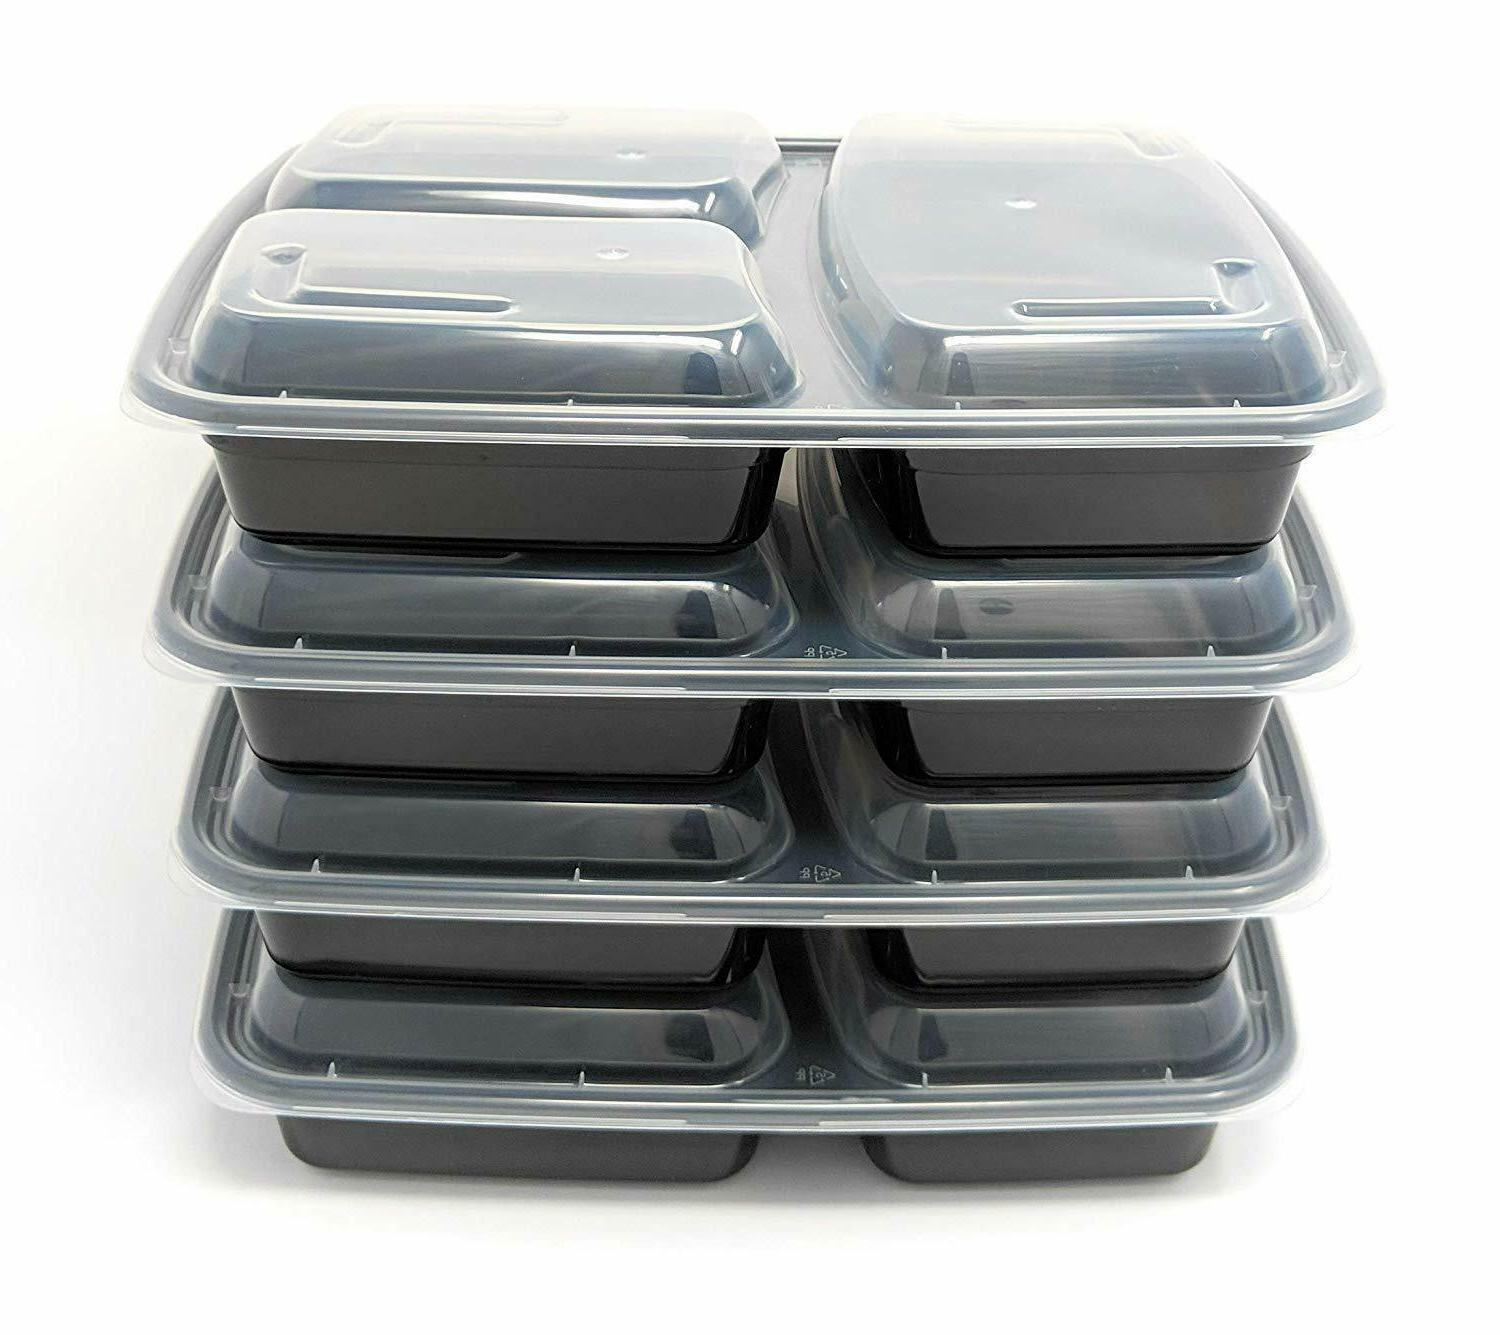 MEAL Safe 3 Compartment Food Storage 15